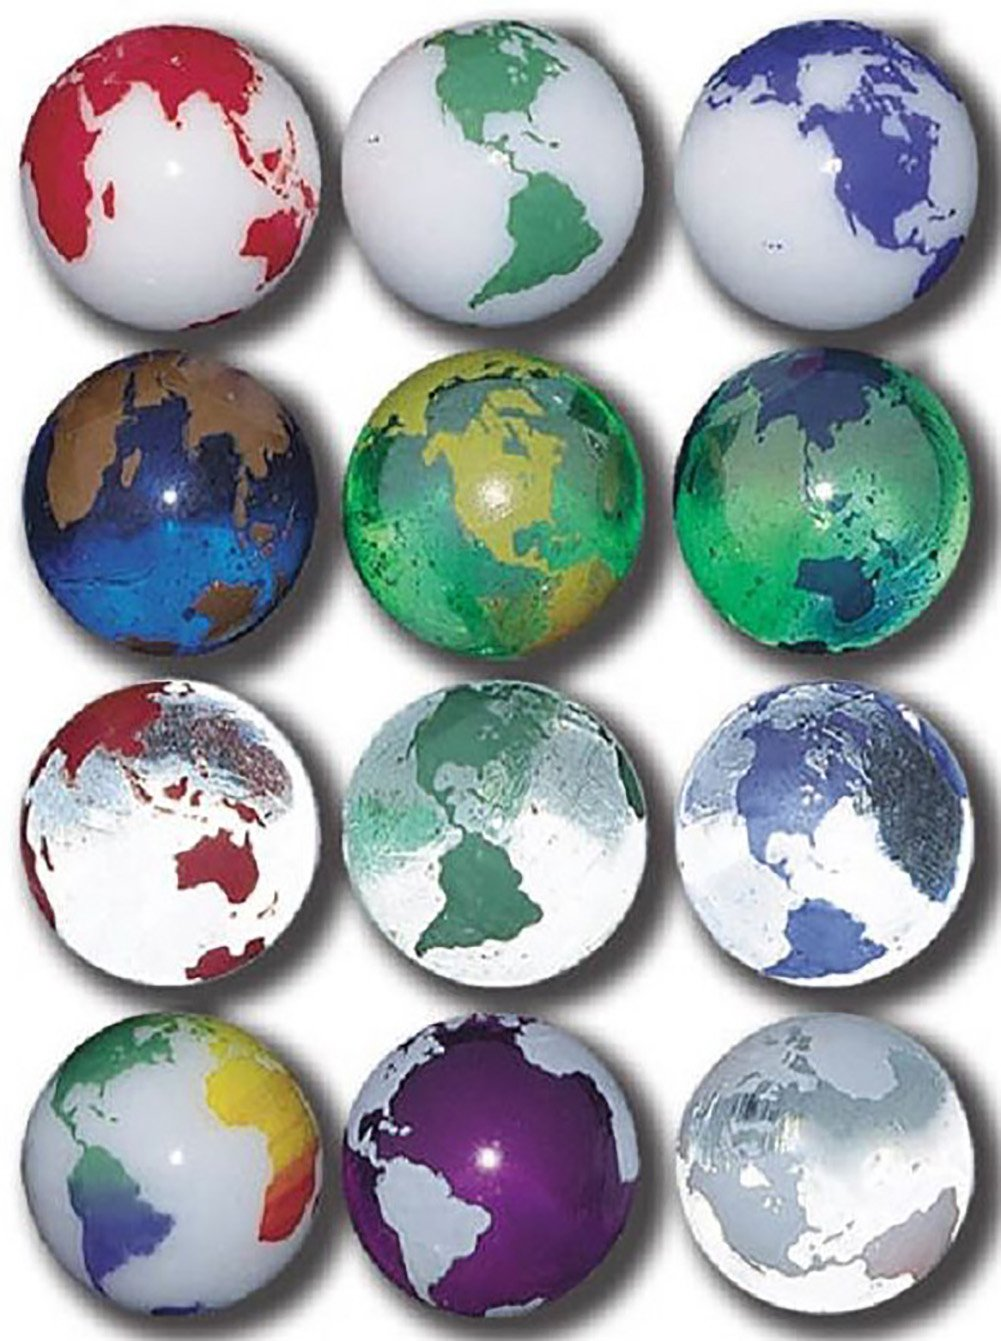 "Unique & Custom {7/8'' Inch} Set Of 3 Big ""Round"" Clear & Opaque Marbles Made of Glass for Filling Vases, Games & Decor w/ Kid's Simple Earth World Globe Design [Blue & White Colors] w/ Stands & Pouch"